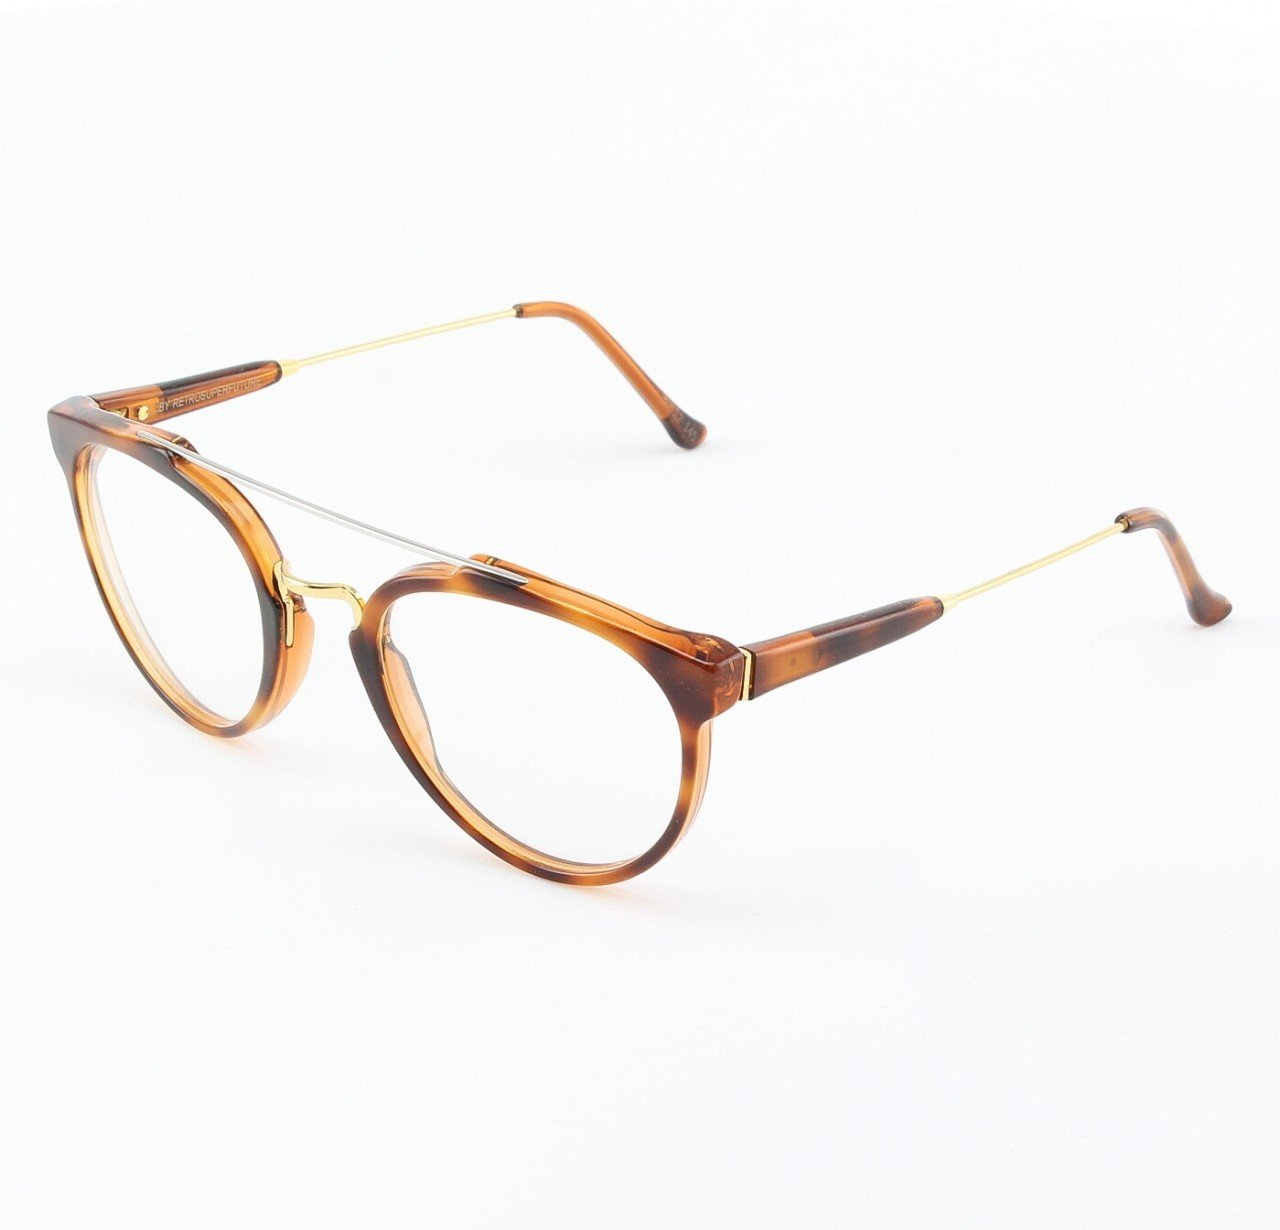 Super Giaguaro 638/0A Eyeglasses Classic Havana with Clear Zeiss Lenses by RETROSUPERFUTURE